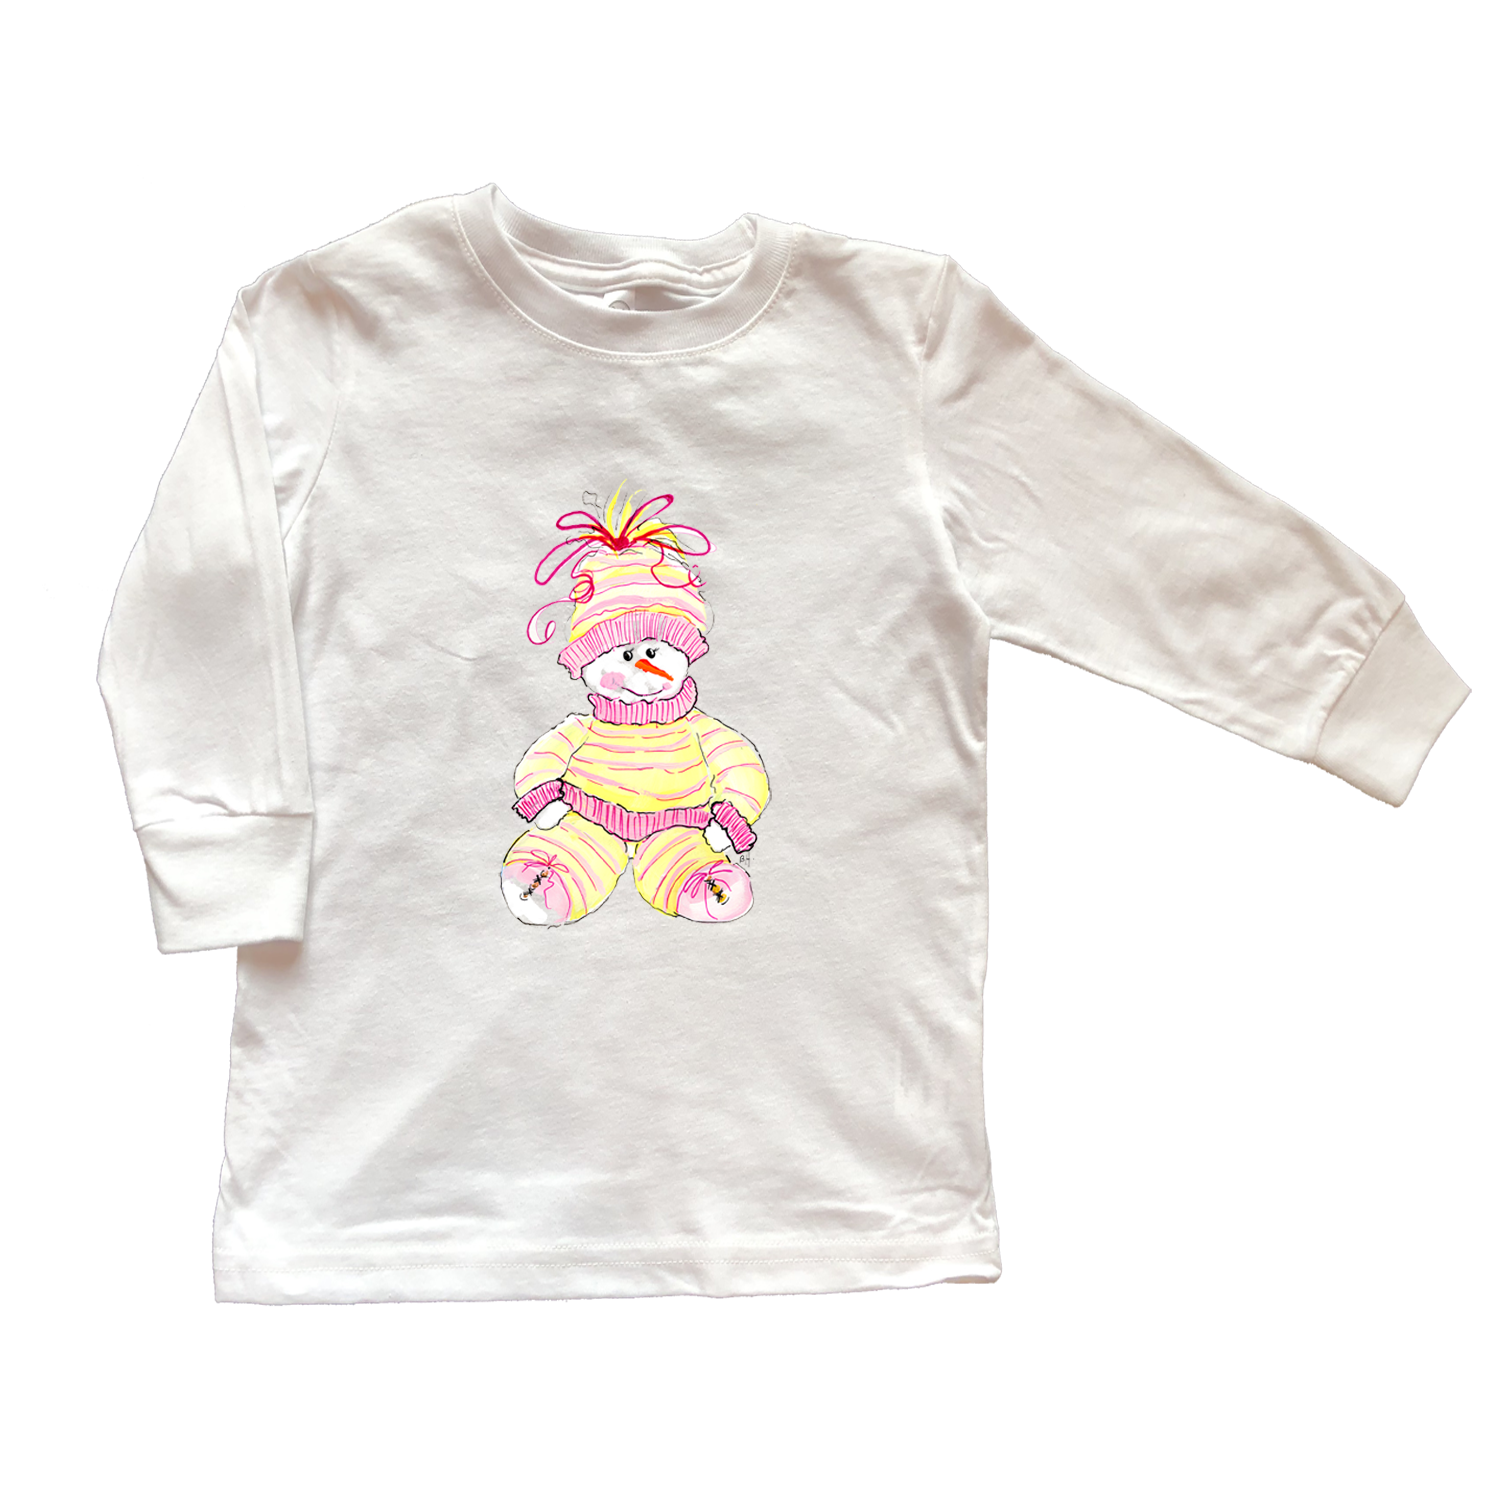 Girls Tee Shirt Long Sleeve TS703